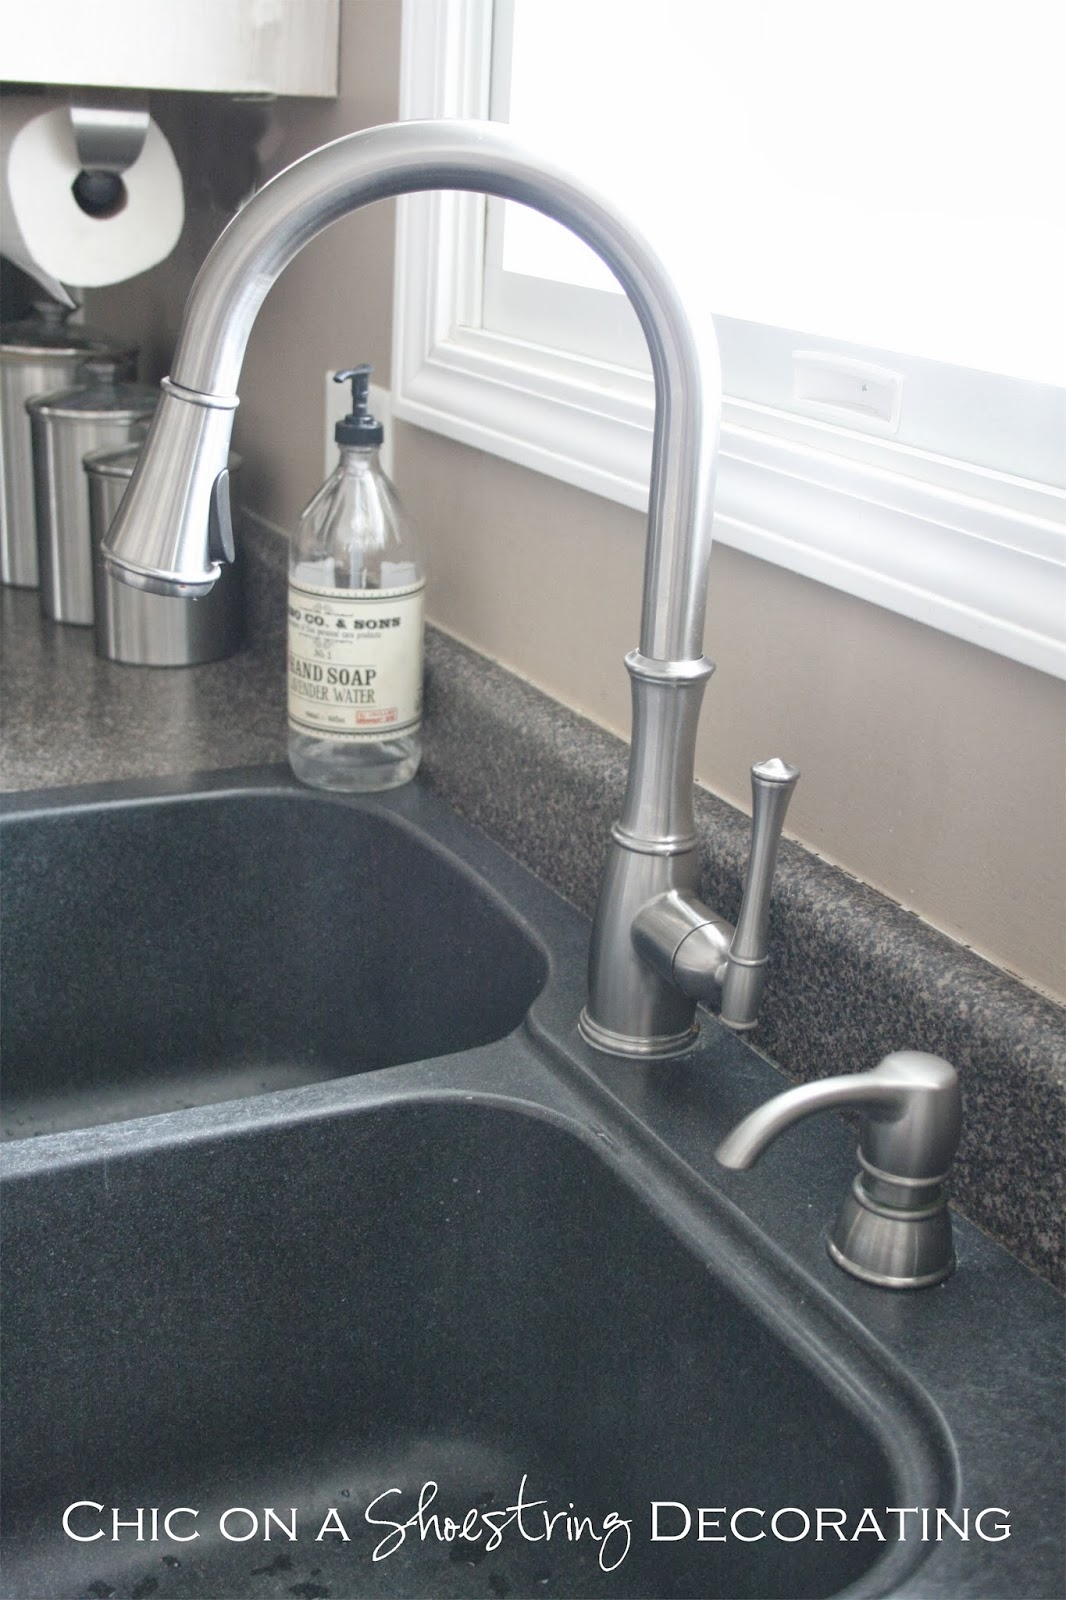 attractive Built In Soap Dispenser For Kitchen Sink #8: $300 Pfister Faucet Giveaway at Chic on a Shoestring Decorating blog! Click  link to enter